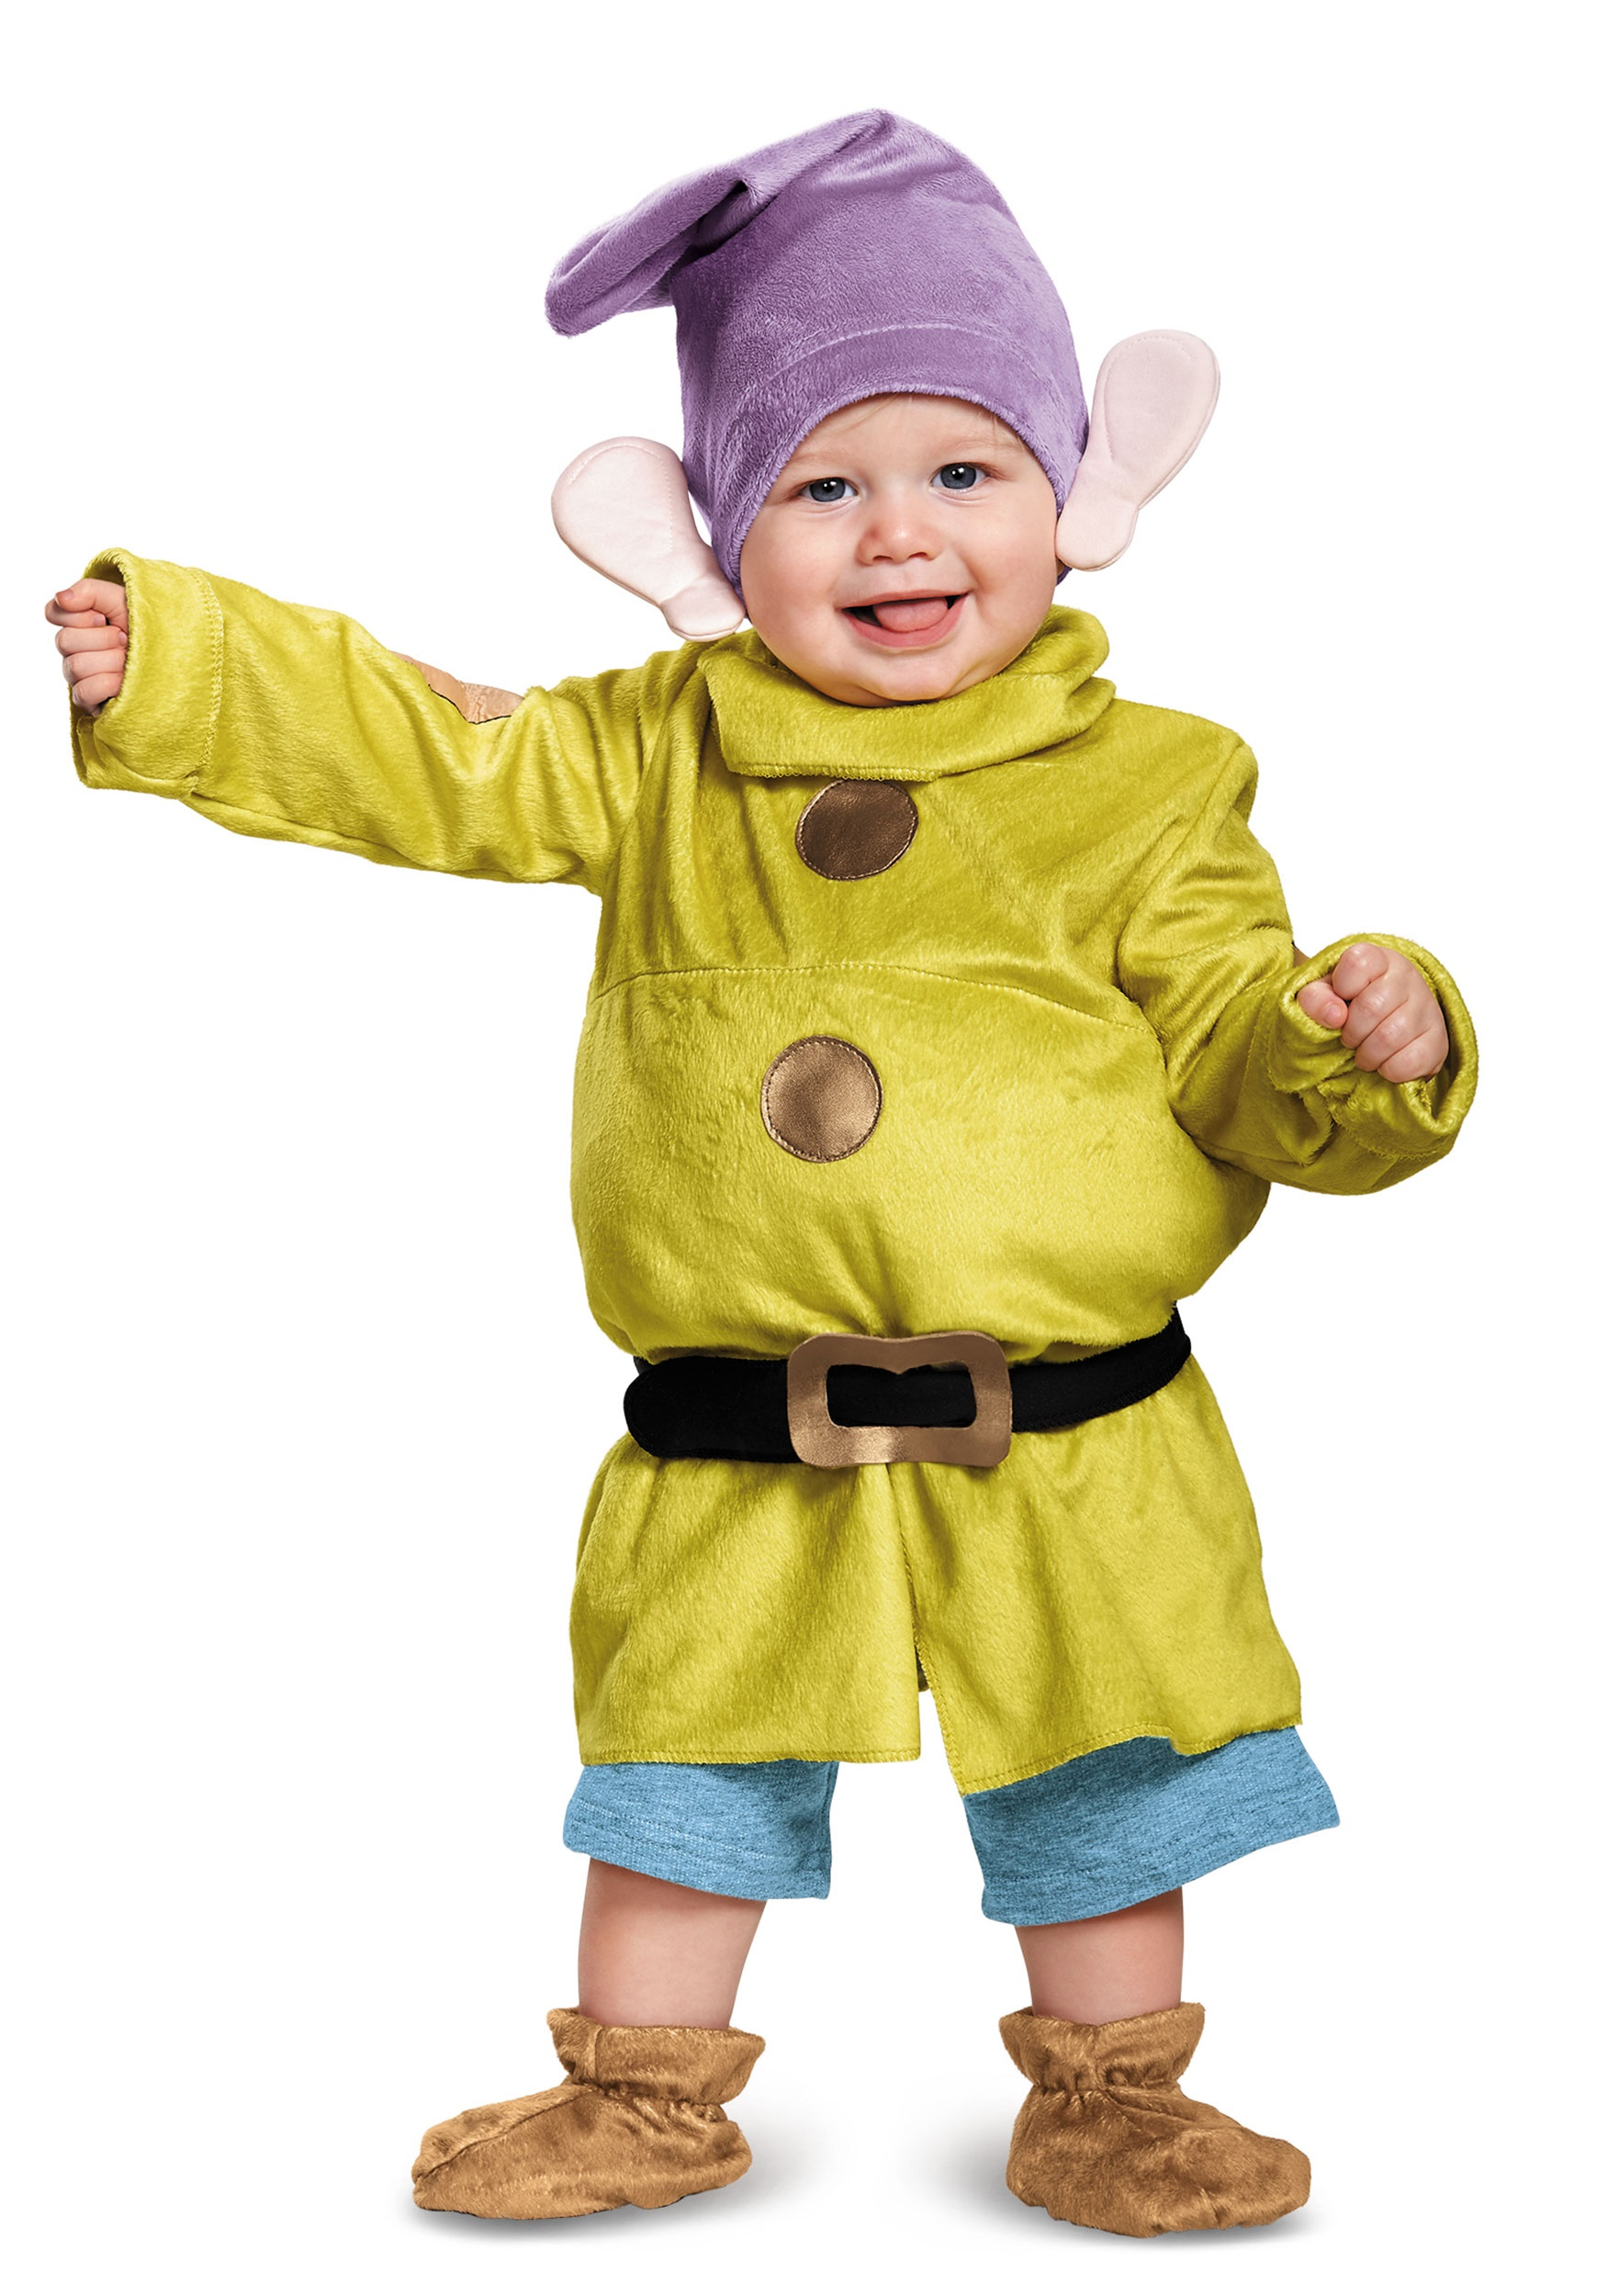 Snow white costumes halloweencostumes dopey deluxe infant costume solutioingenieria Gallery